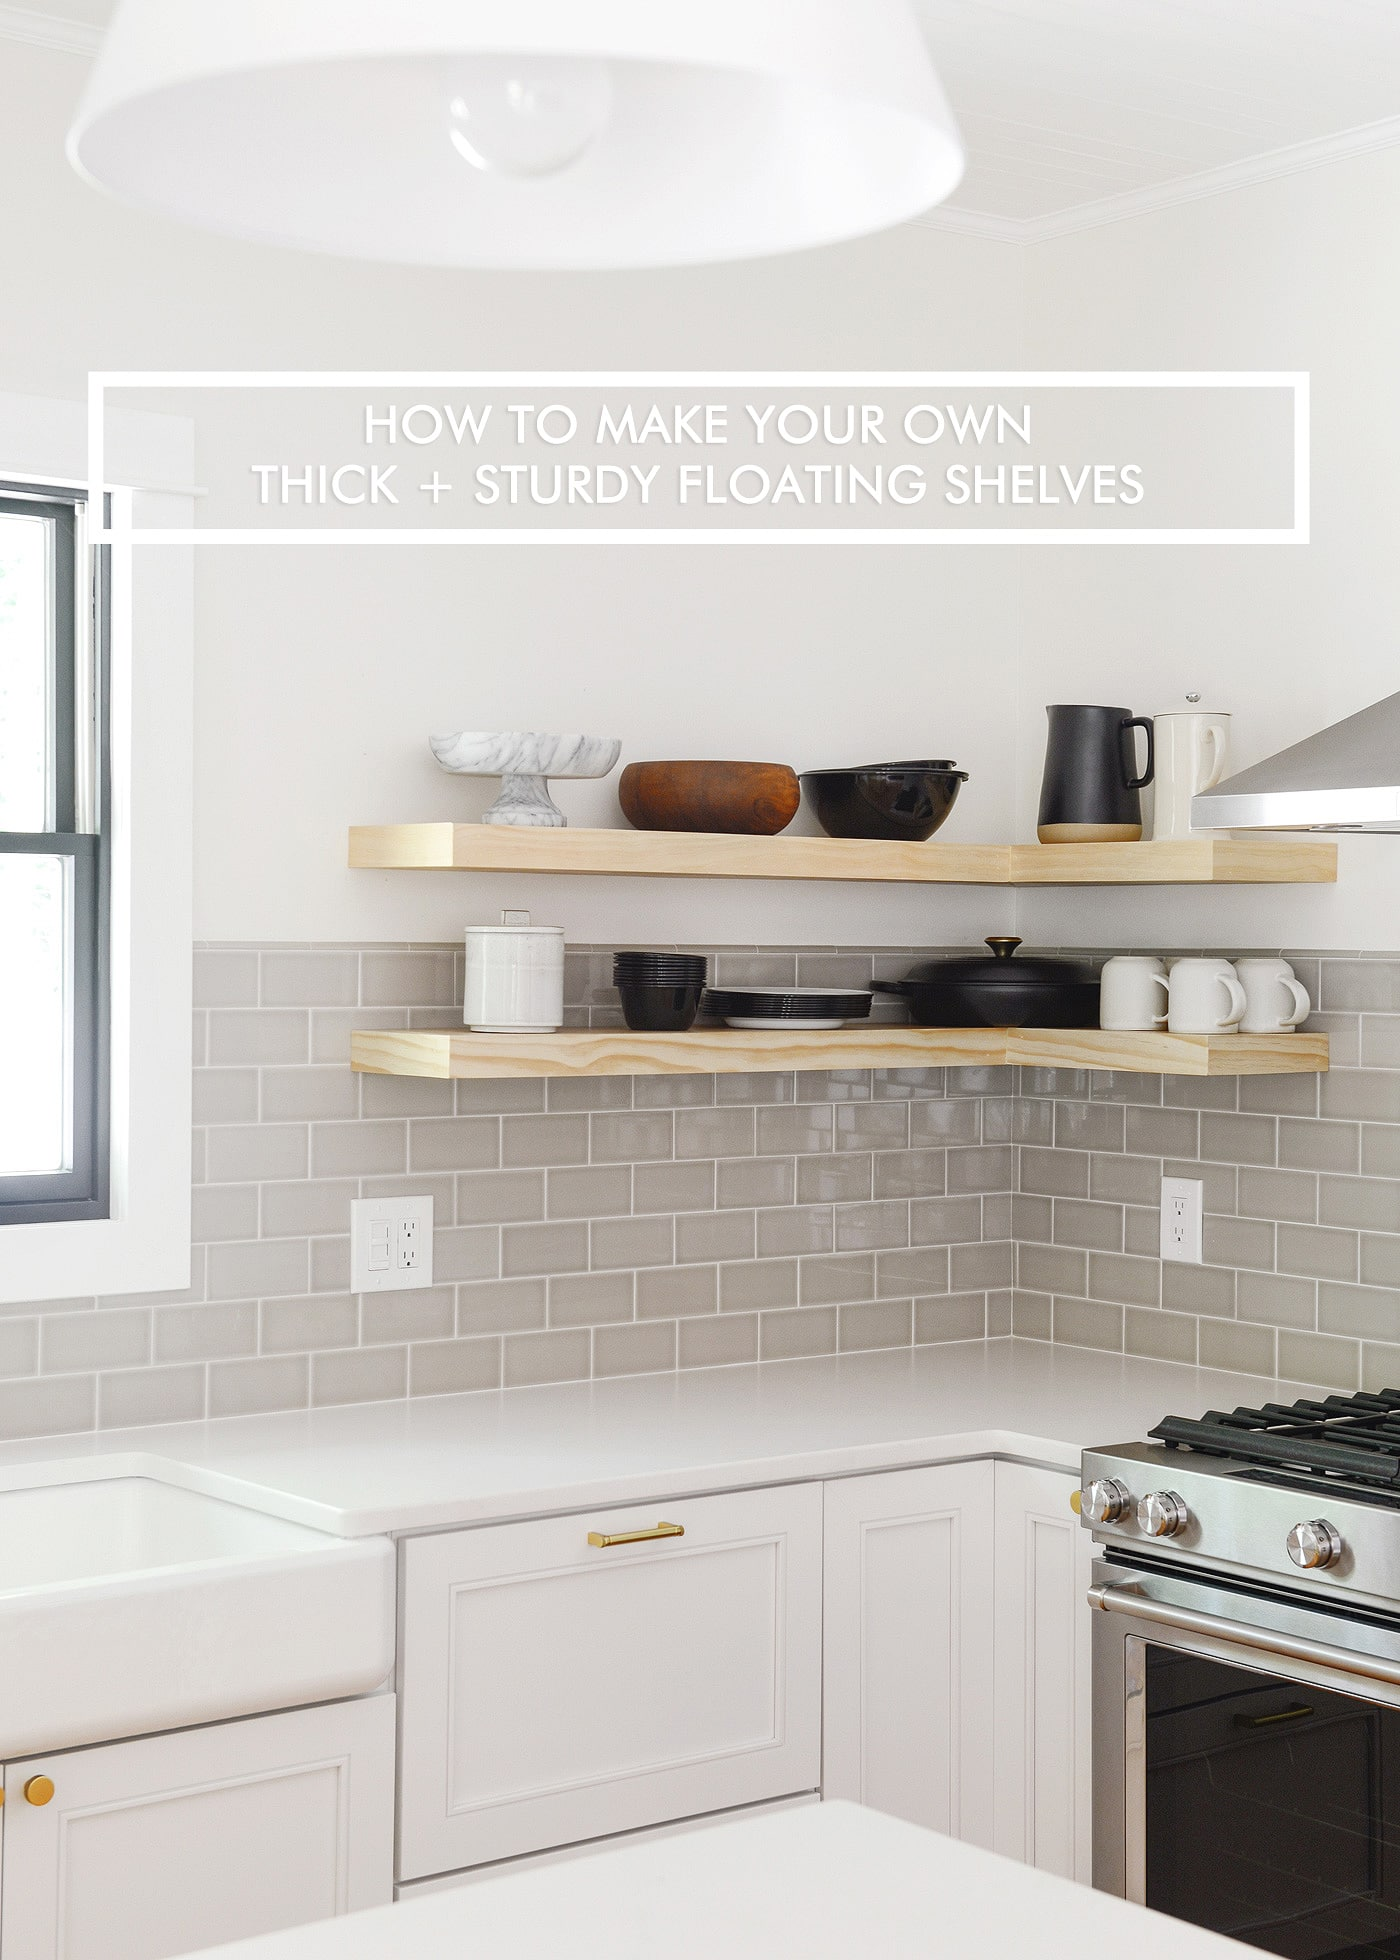 Make Your Own Thick And Sturdy Floating Shelves // Video Tutorial! // Via